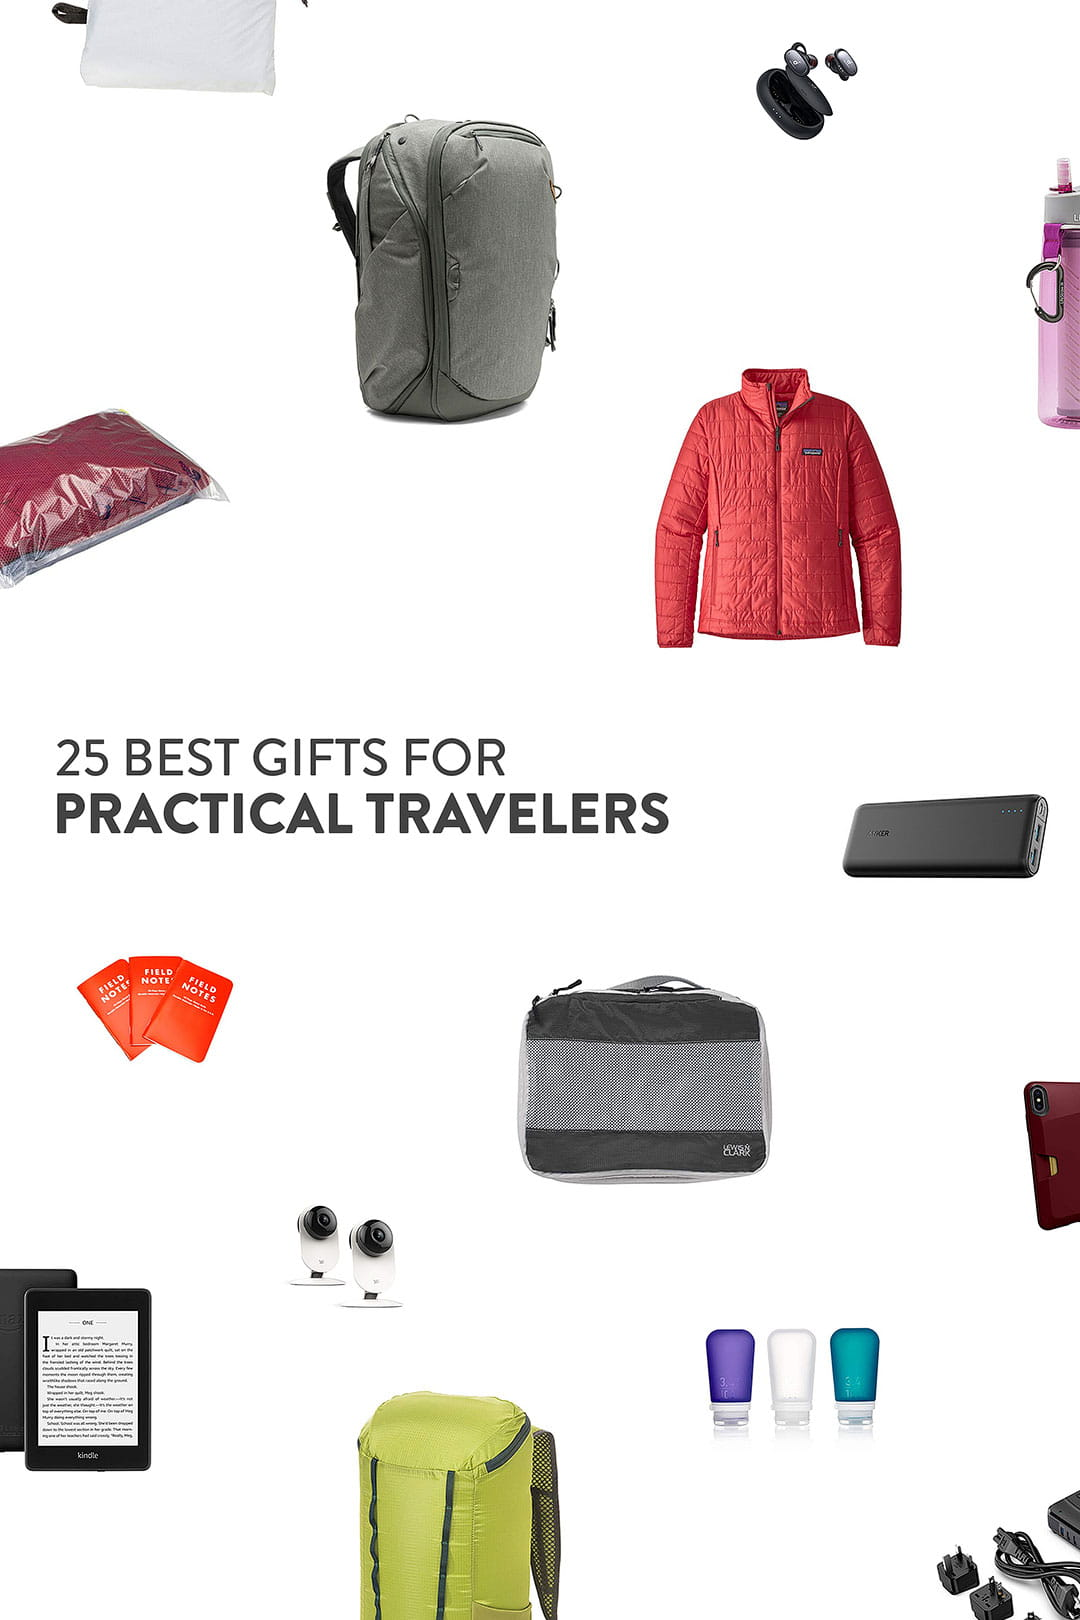 25 Greatest Useful Gifts for Travelers in 2019